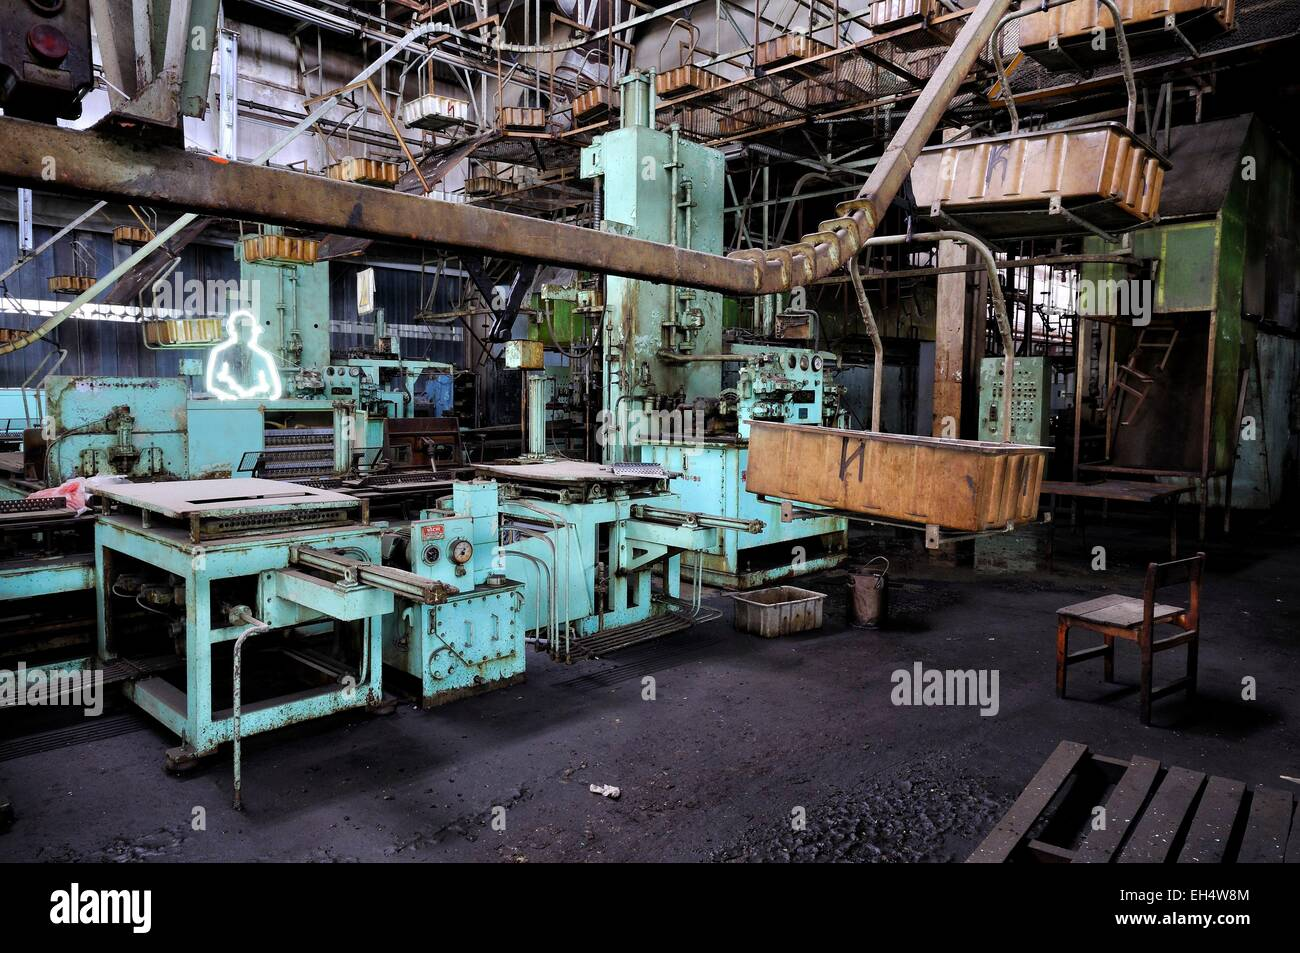 Azerbaijan, Baku, abandoned air conditioner factory which used to employ 6000 workers in the 1970s until the production Stock Photo